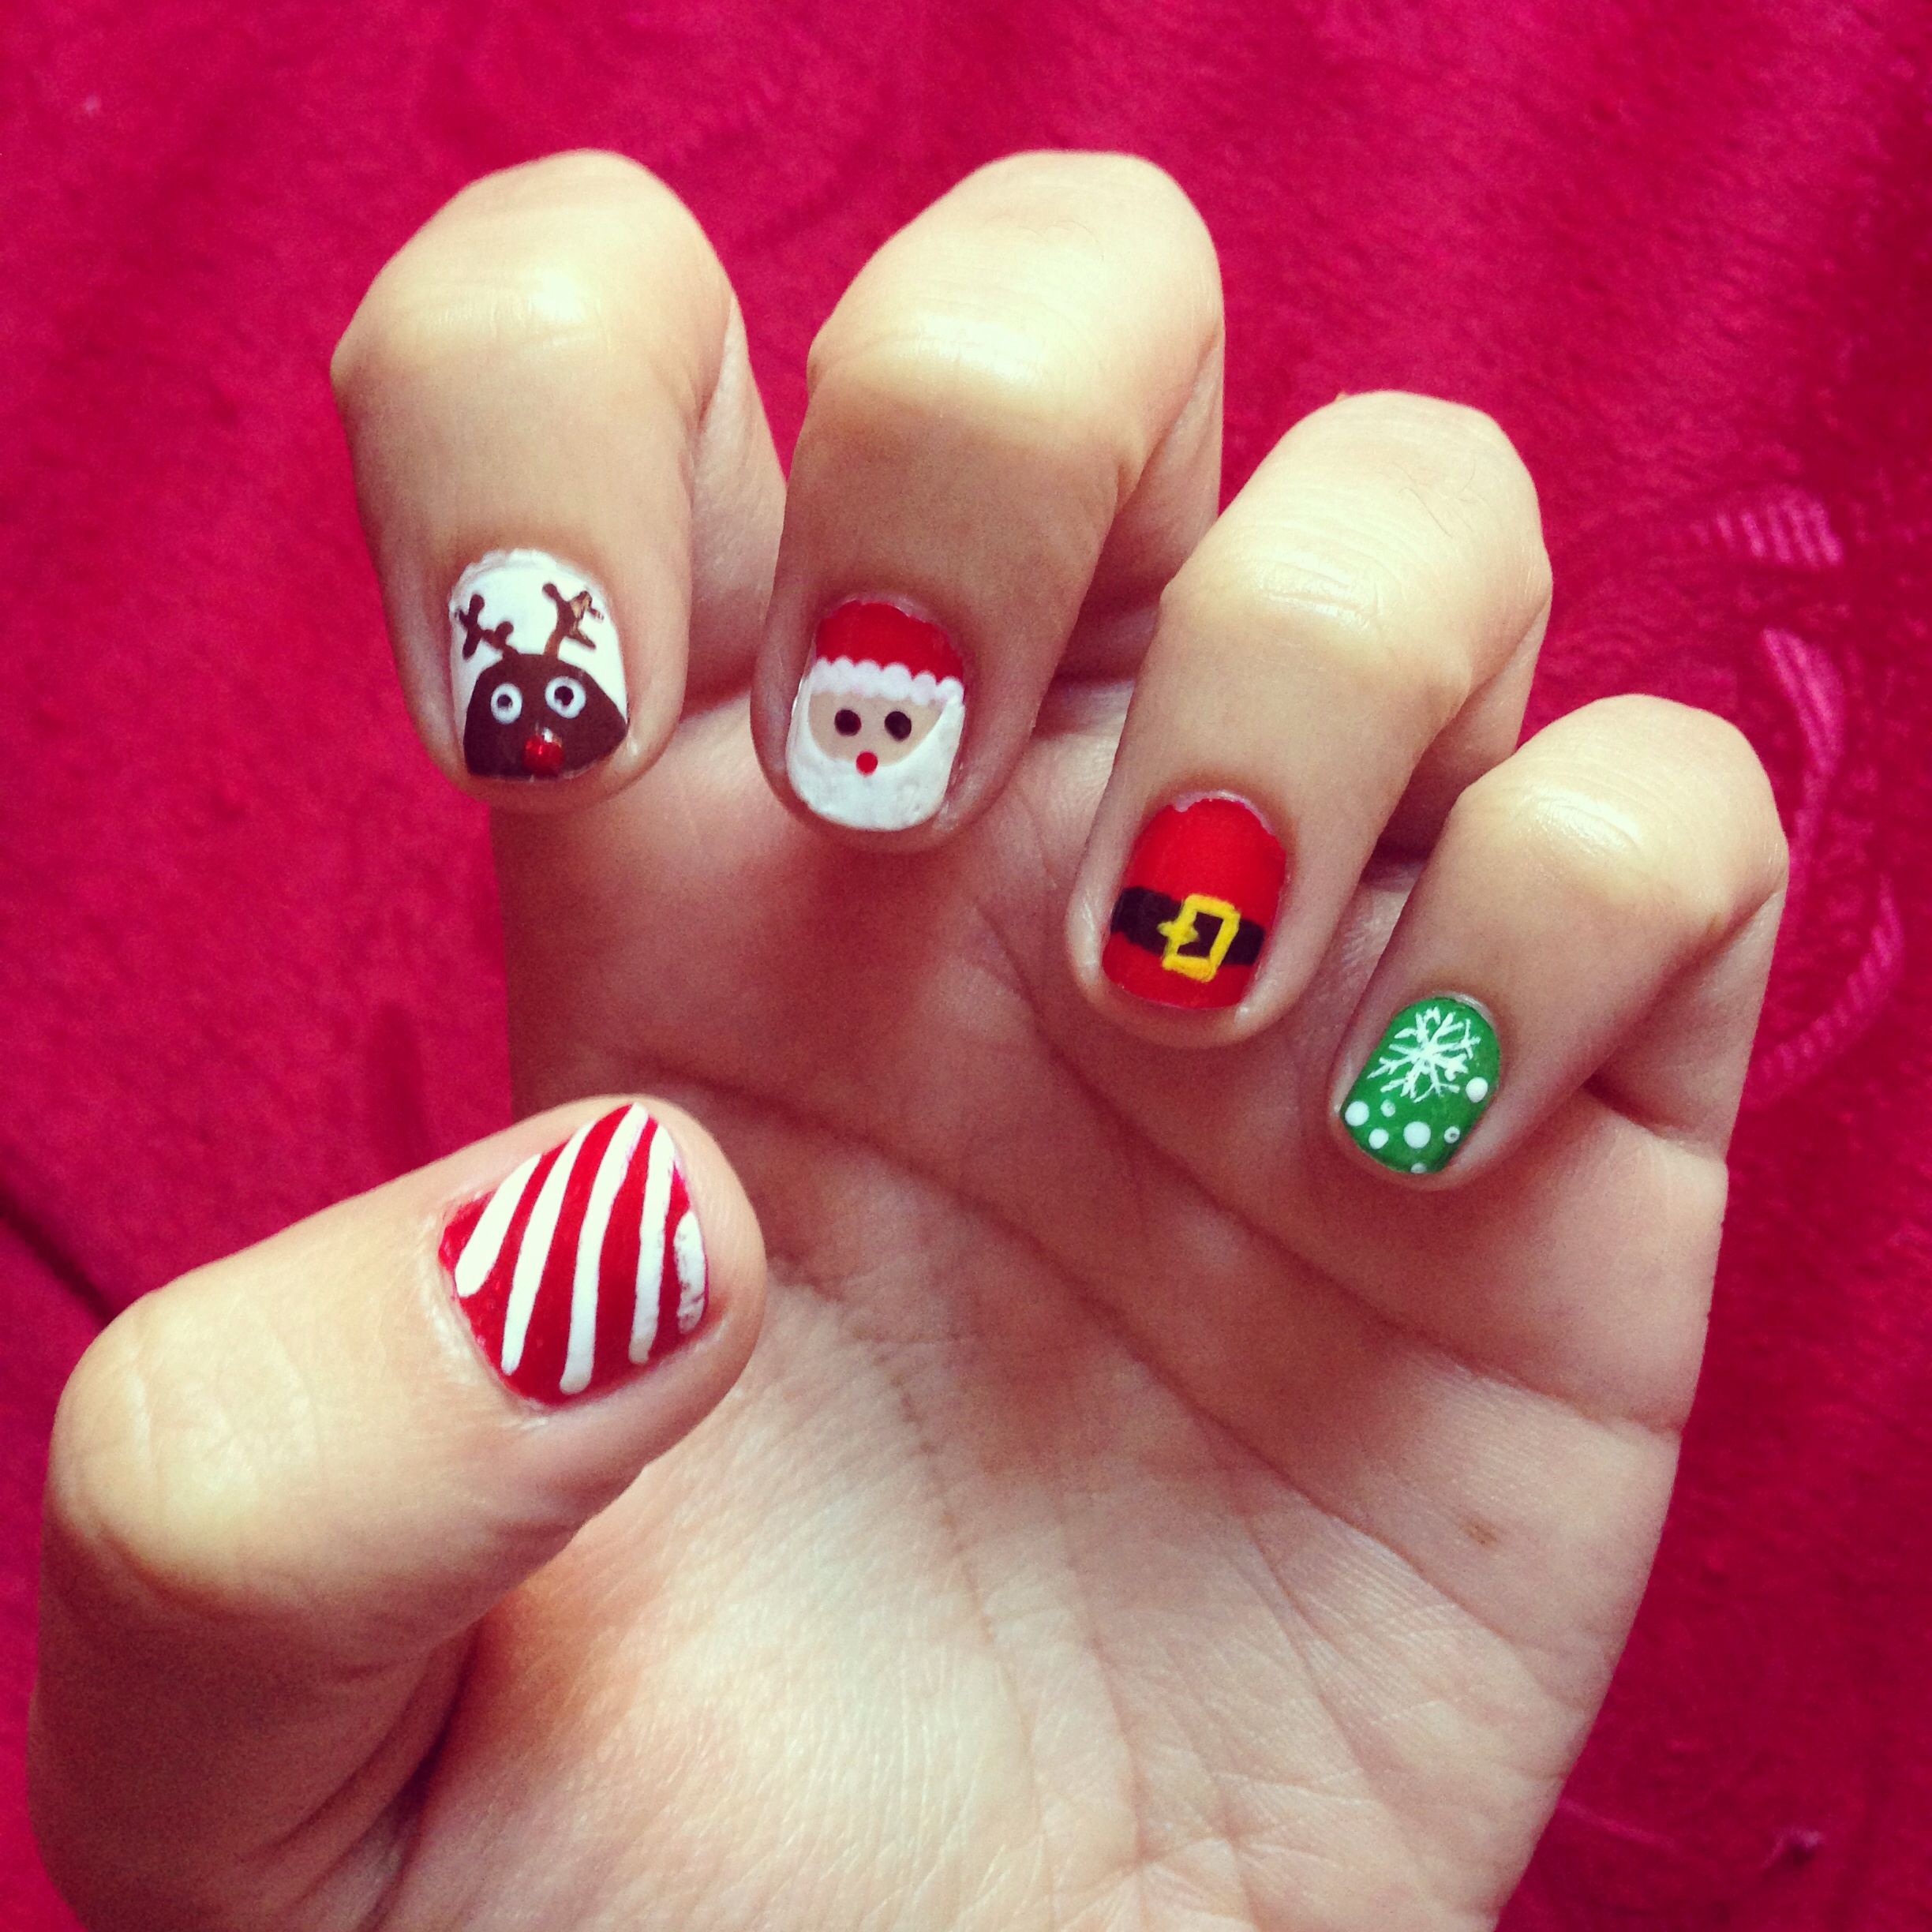 My new version of christmas nails! By: Freaky Fashion Friday Blog.